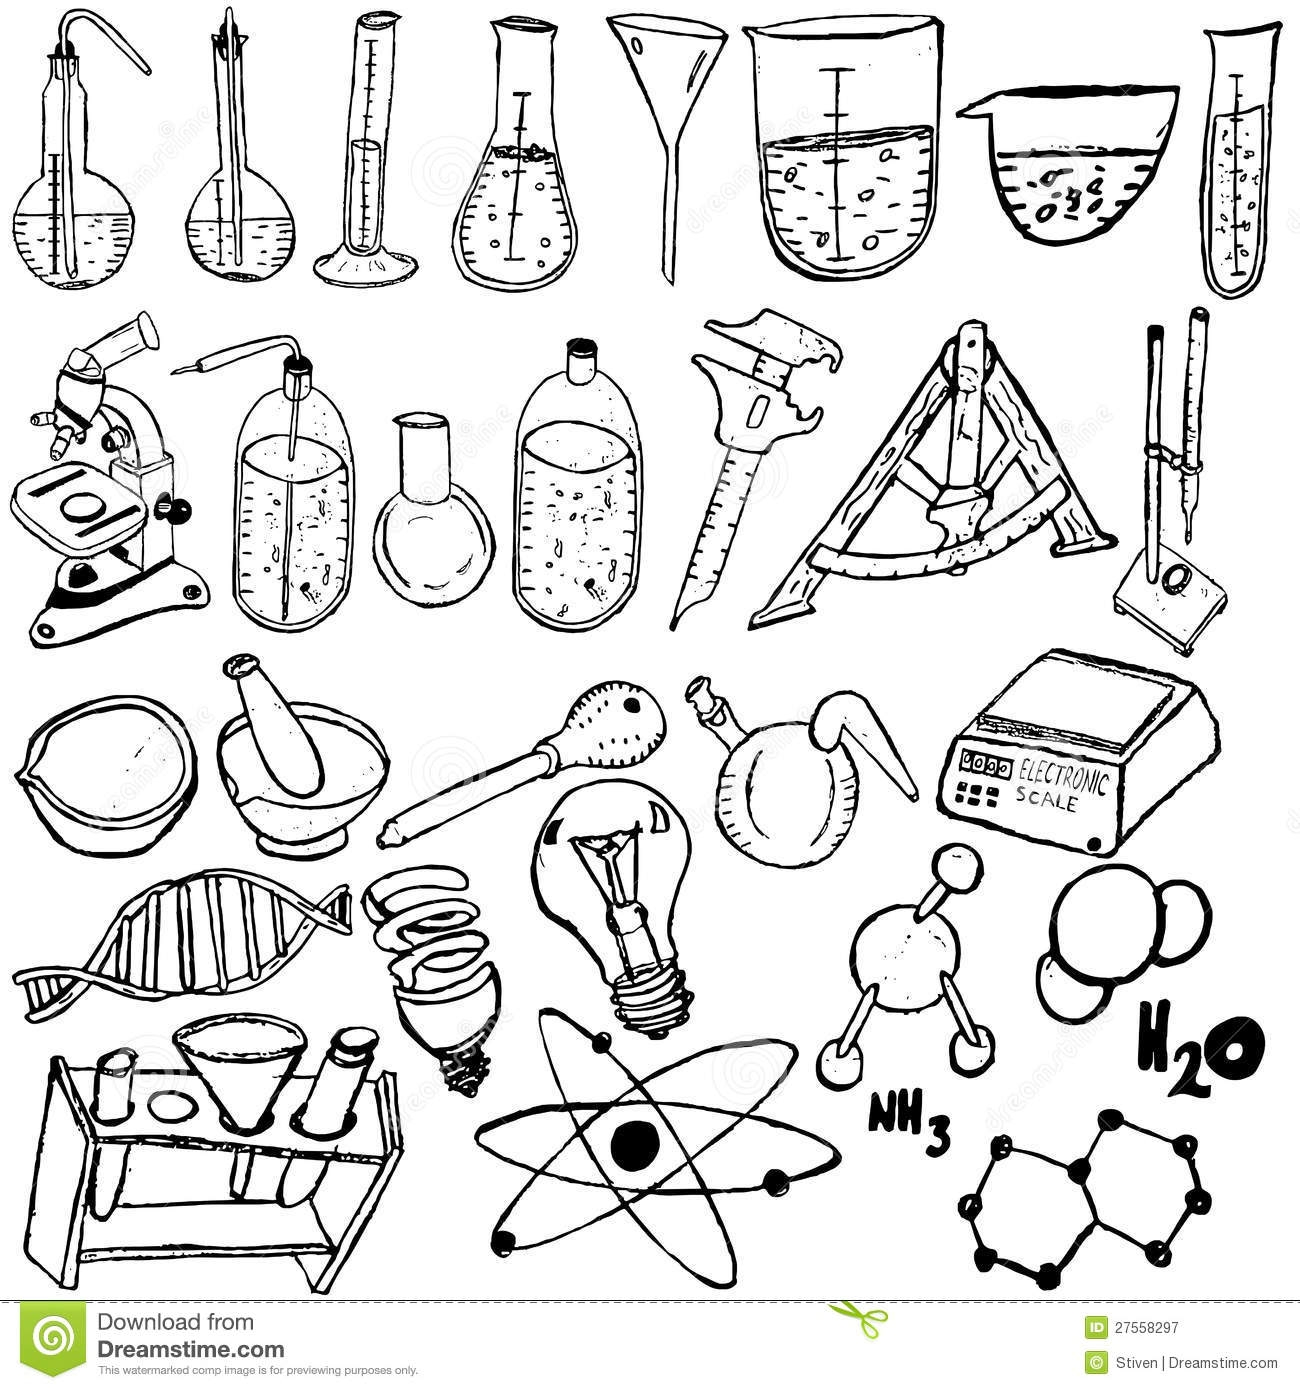 biology coloring pages - royalty free stock photography science icons sketch image